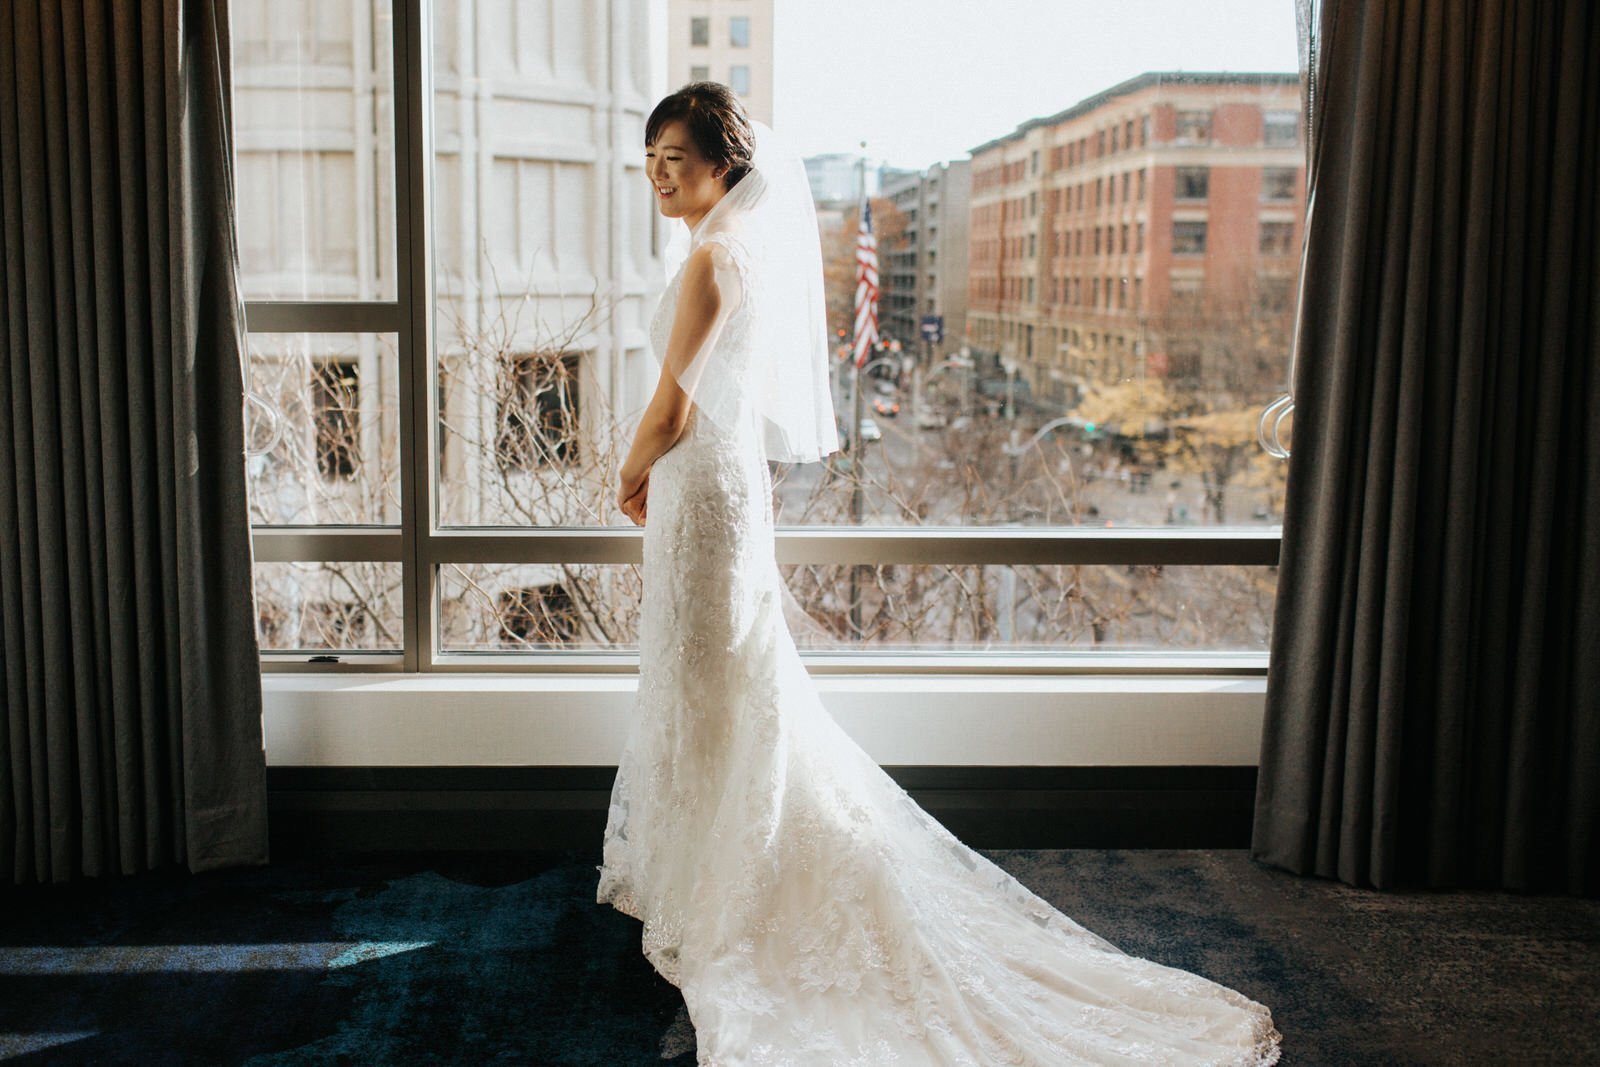 The bride in the window of hotel 1000